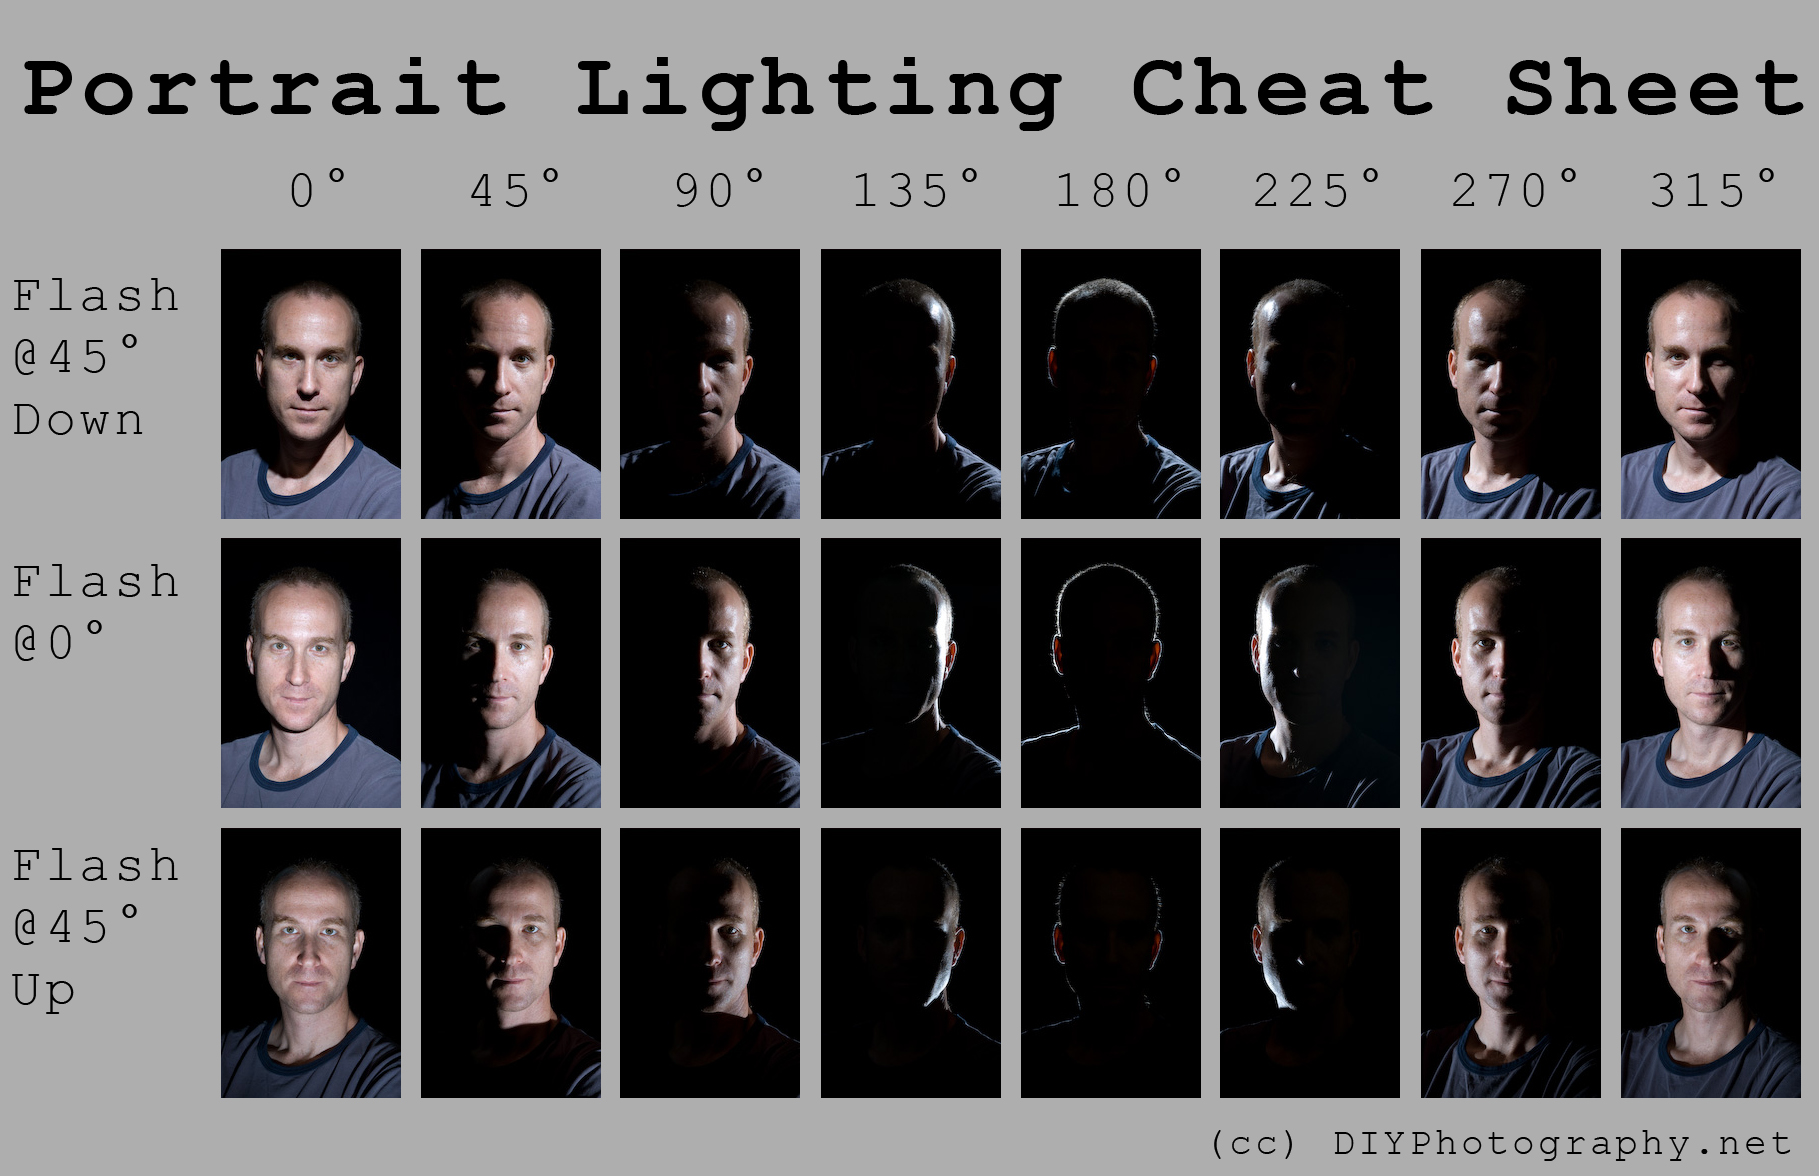 shoot light learn you setups model a lighting with and portrait easy four awesome can